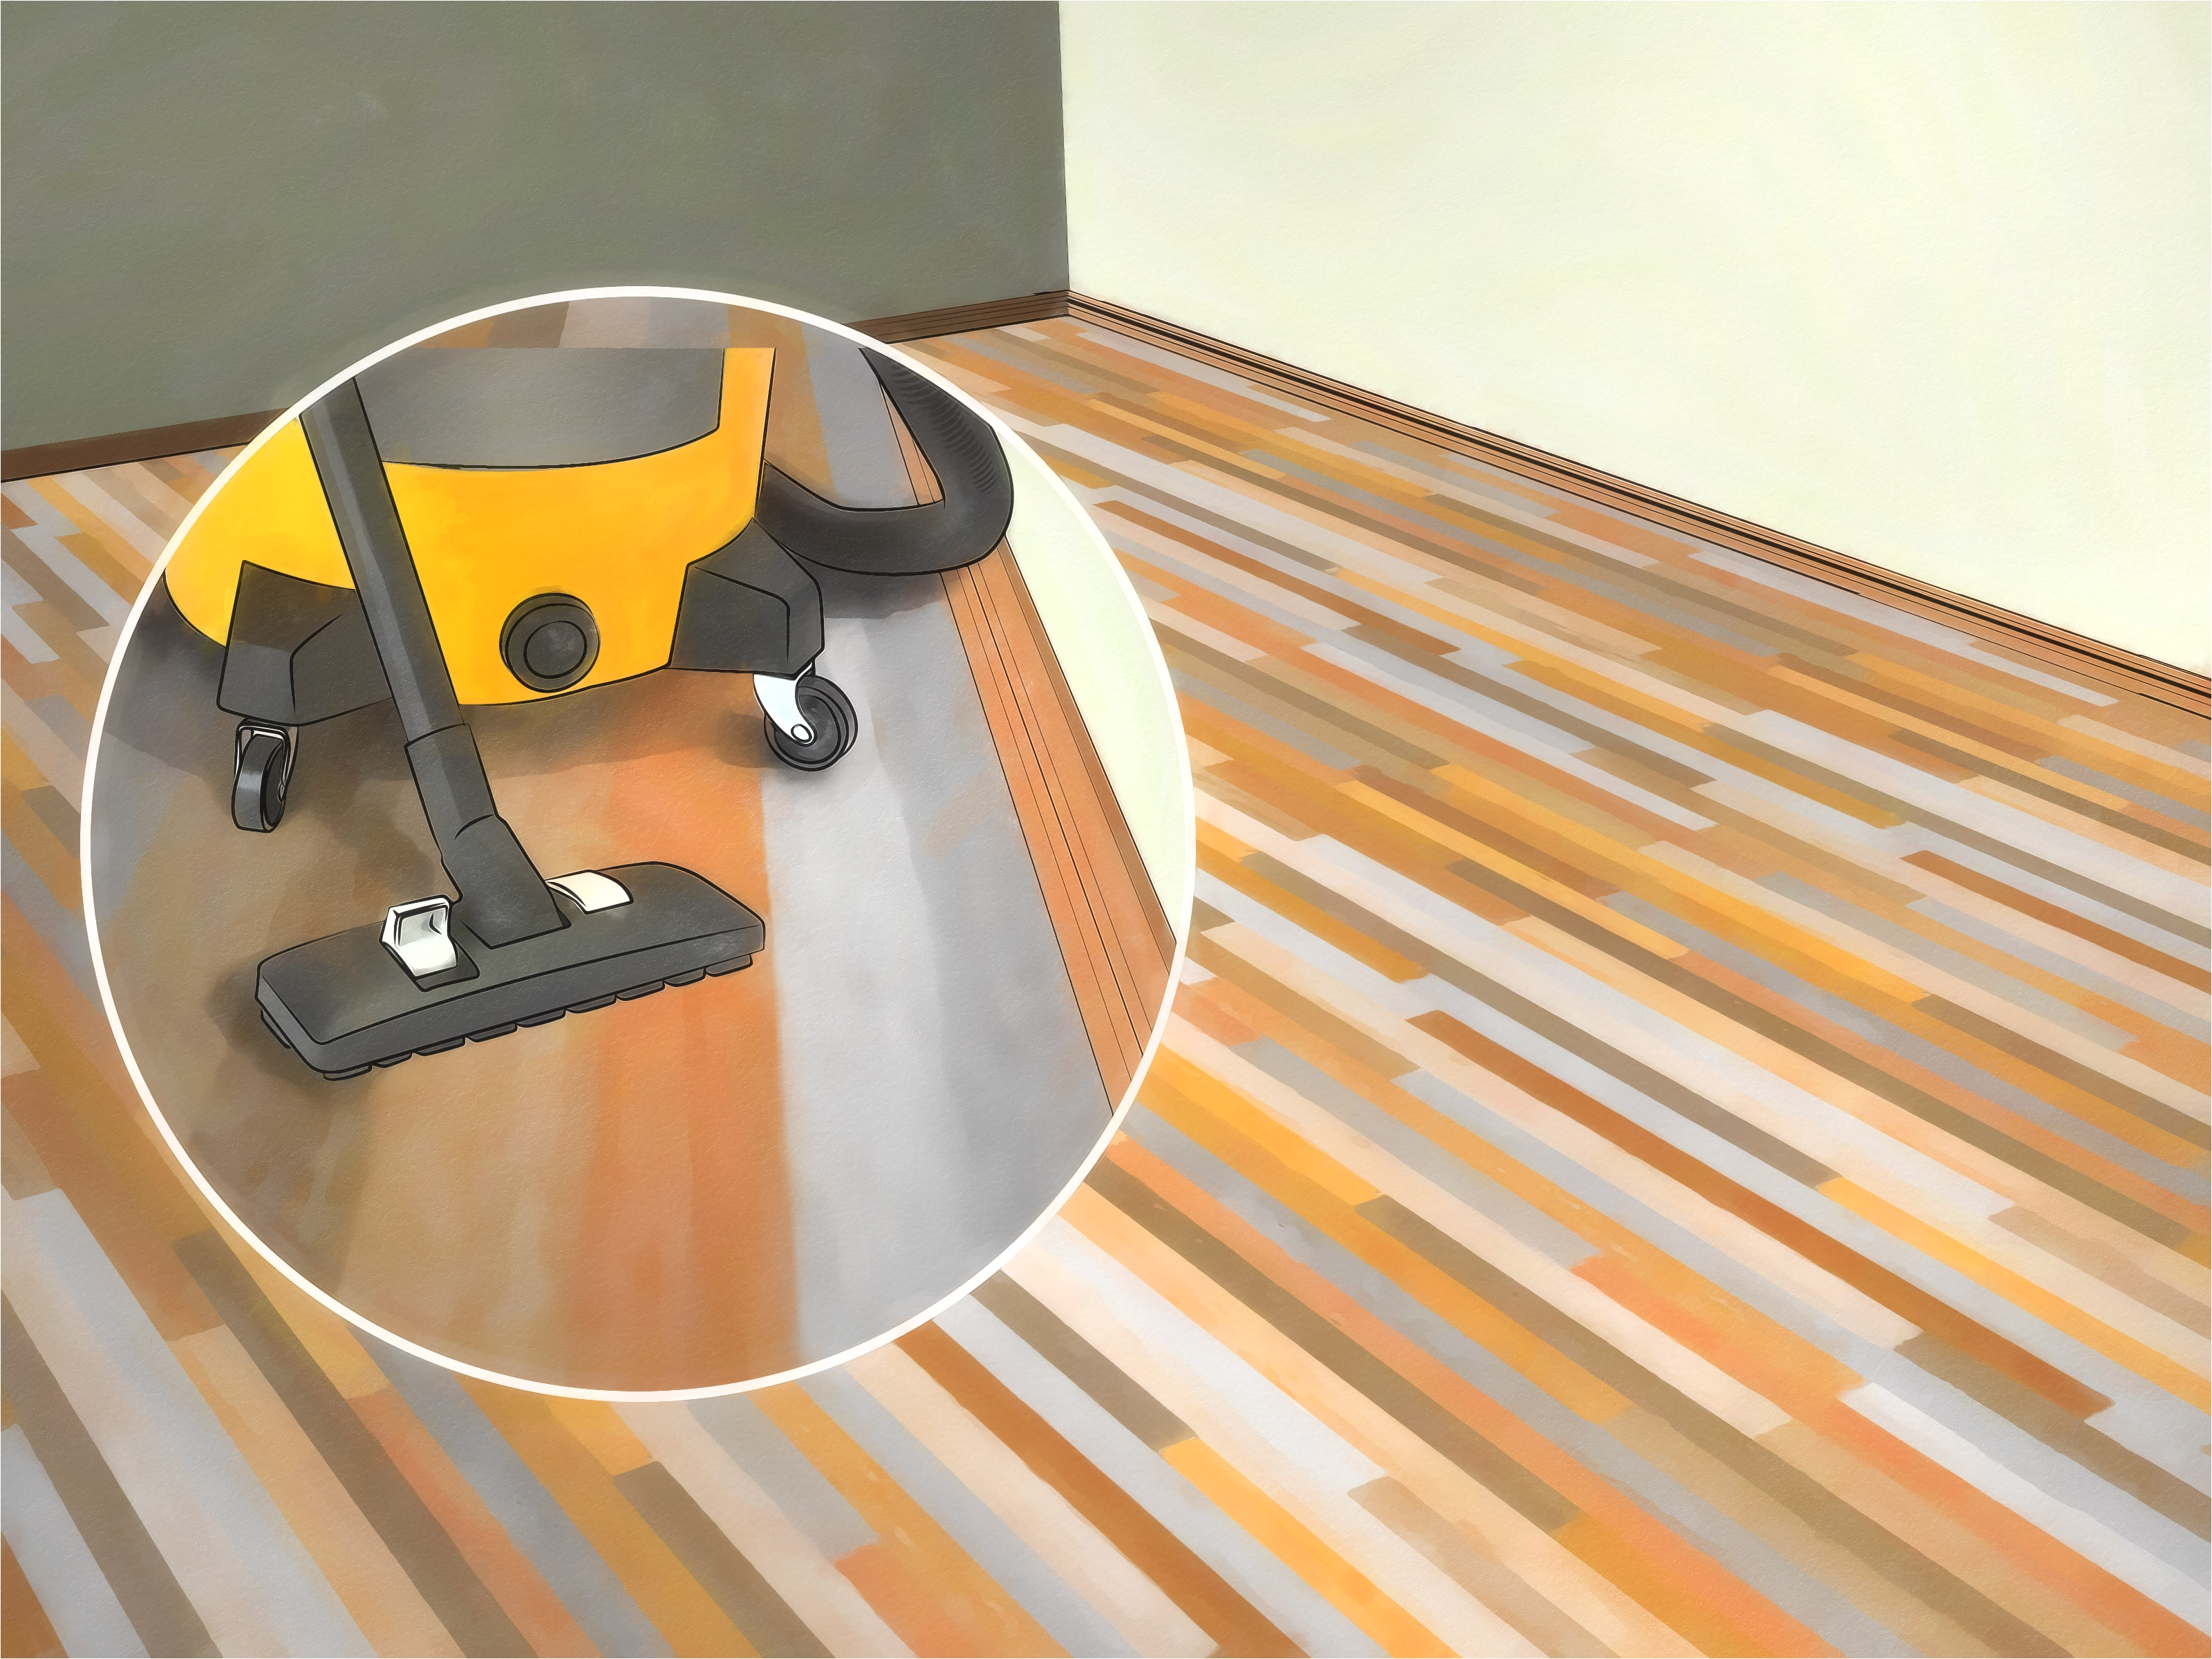 Best Vacuum for Hard Floors Australia How to Sand Hardwood Floors with Pictures Wikihow